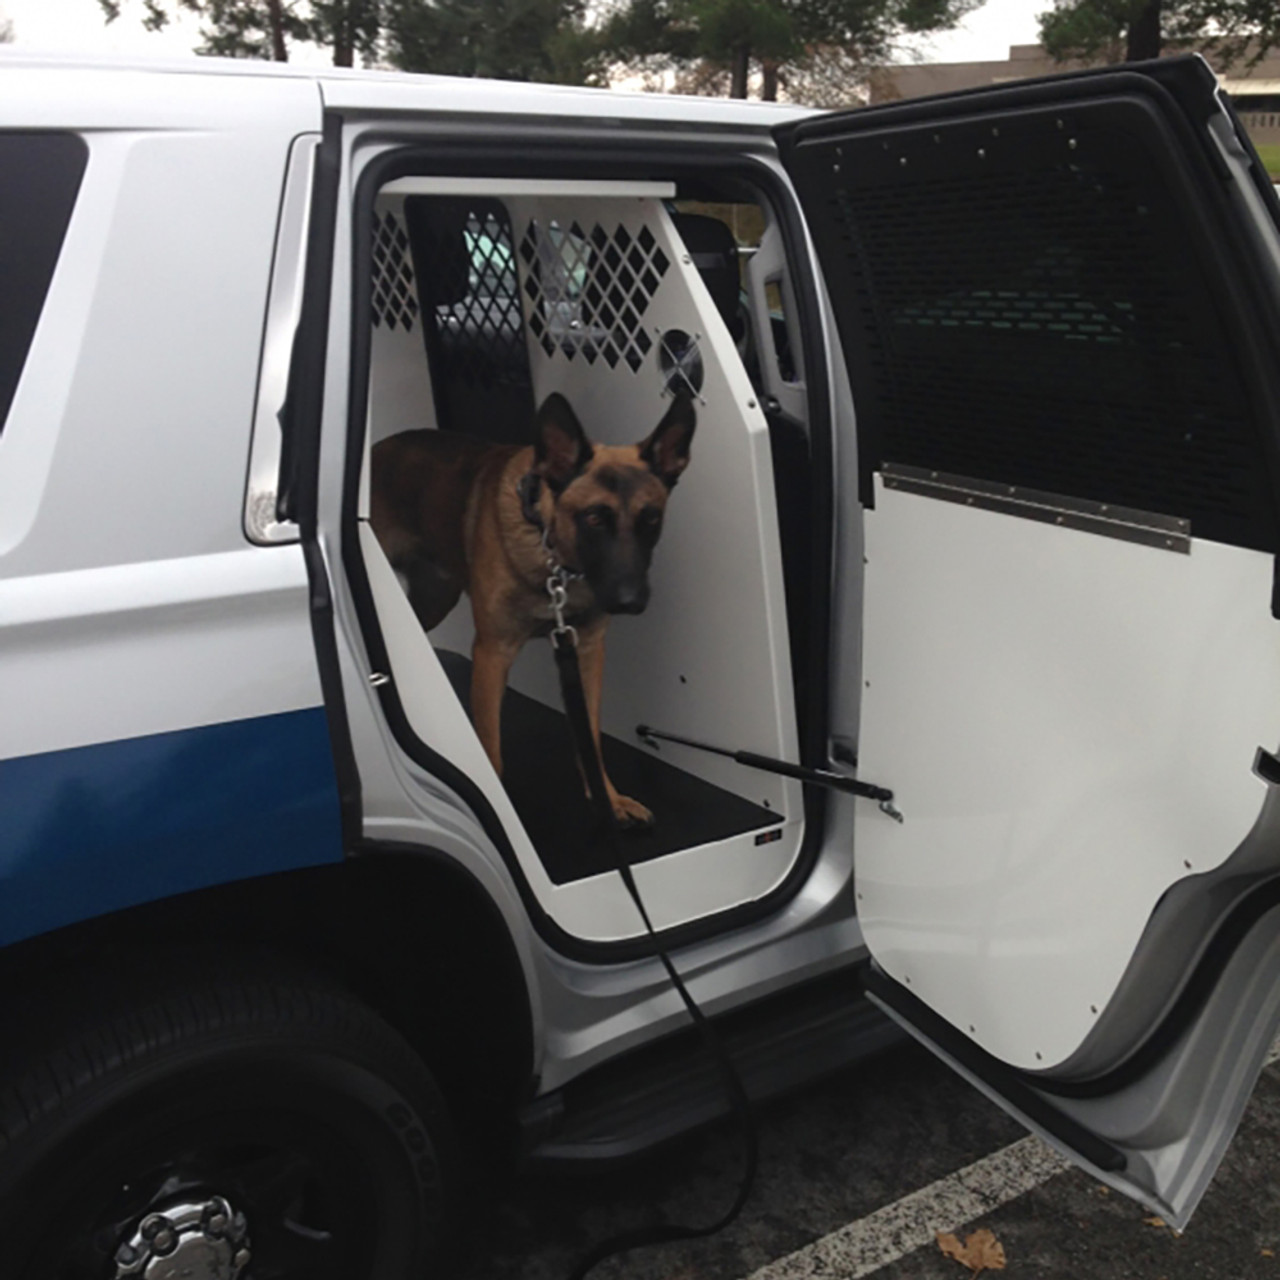 Havis K9 C23 Police K9 Dog Kennel Box Transport System For Chevy Tahoe 2015 2020 Choose White Or Black Kit Housing With One Front Sliding Door Aluminum Door Panels And Fold Down Interior Window Guards